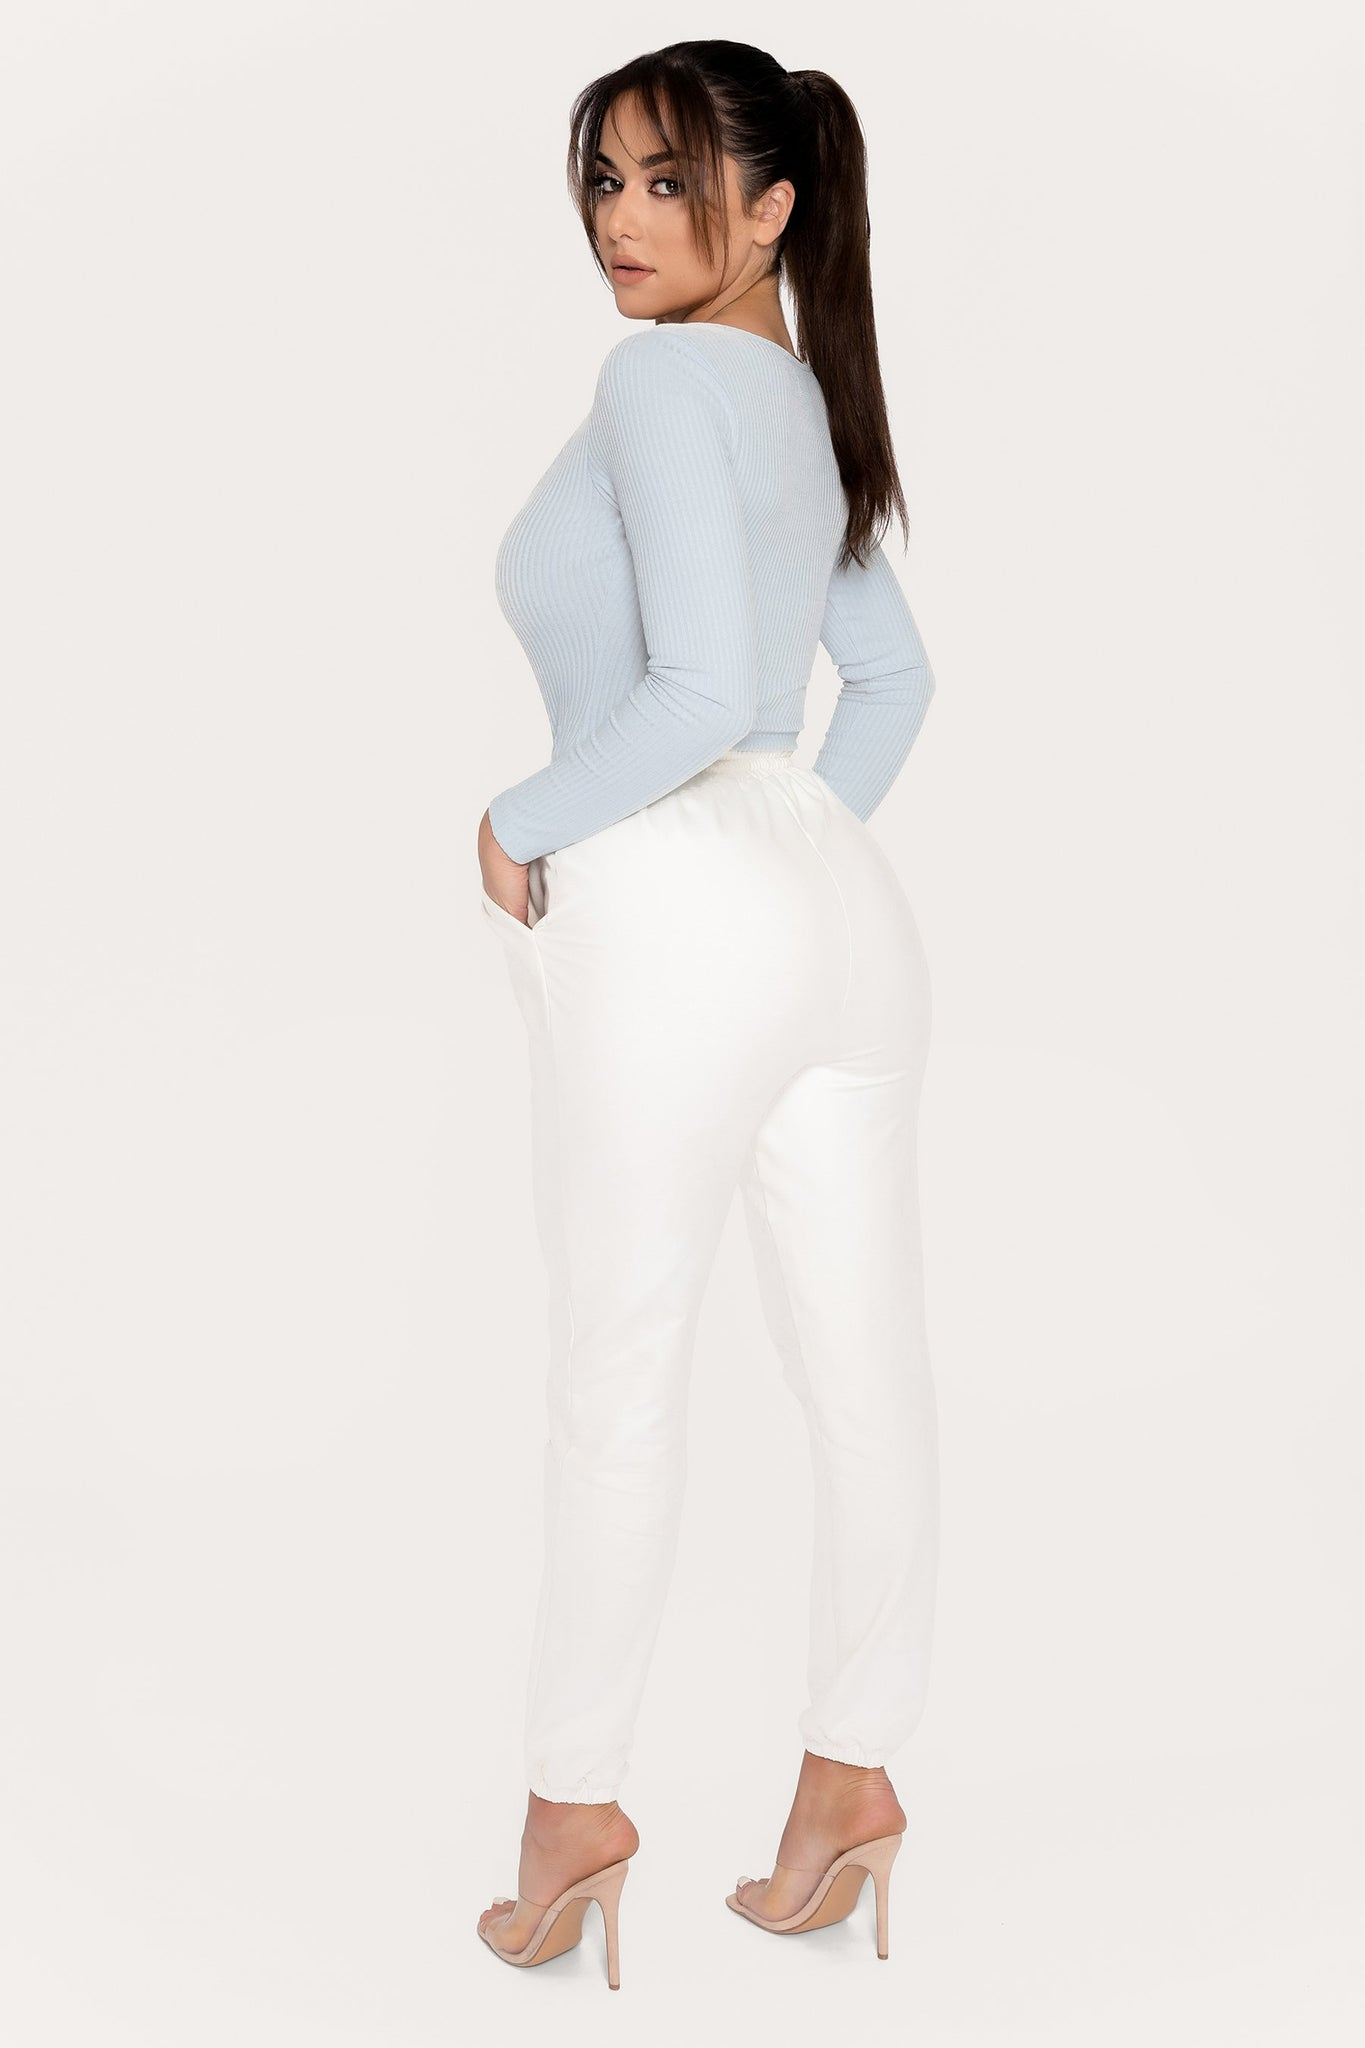 Desirae Long Sleeve Scoop Bodysuit - Baby Blue - MESHKI